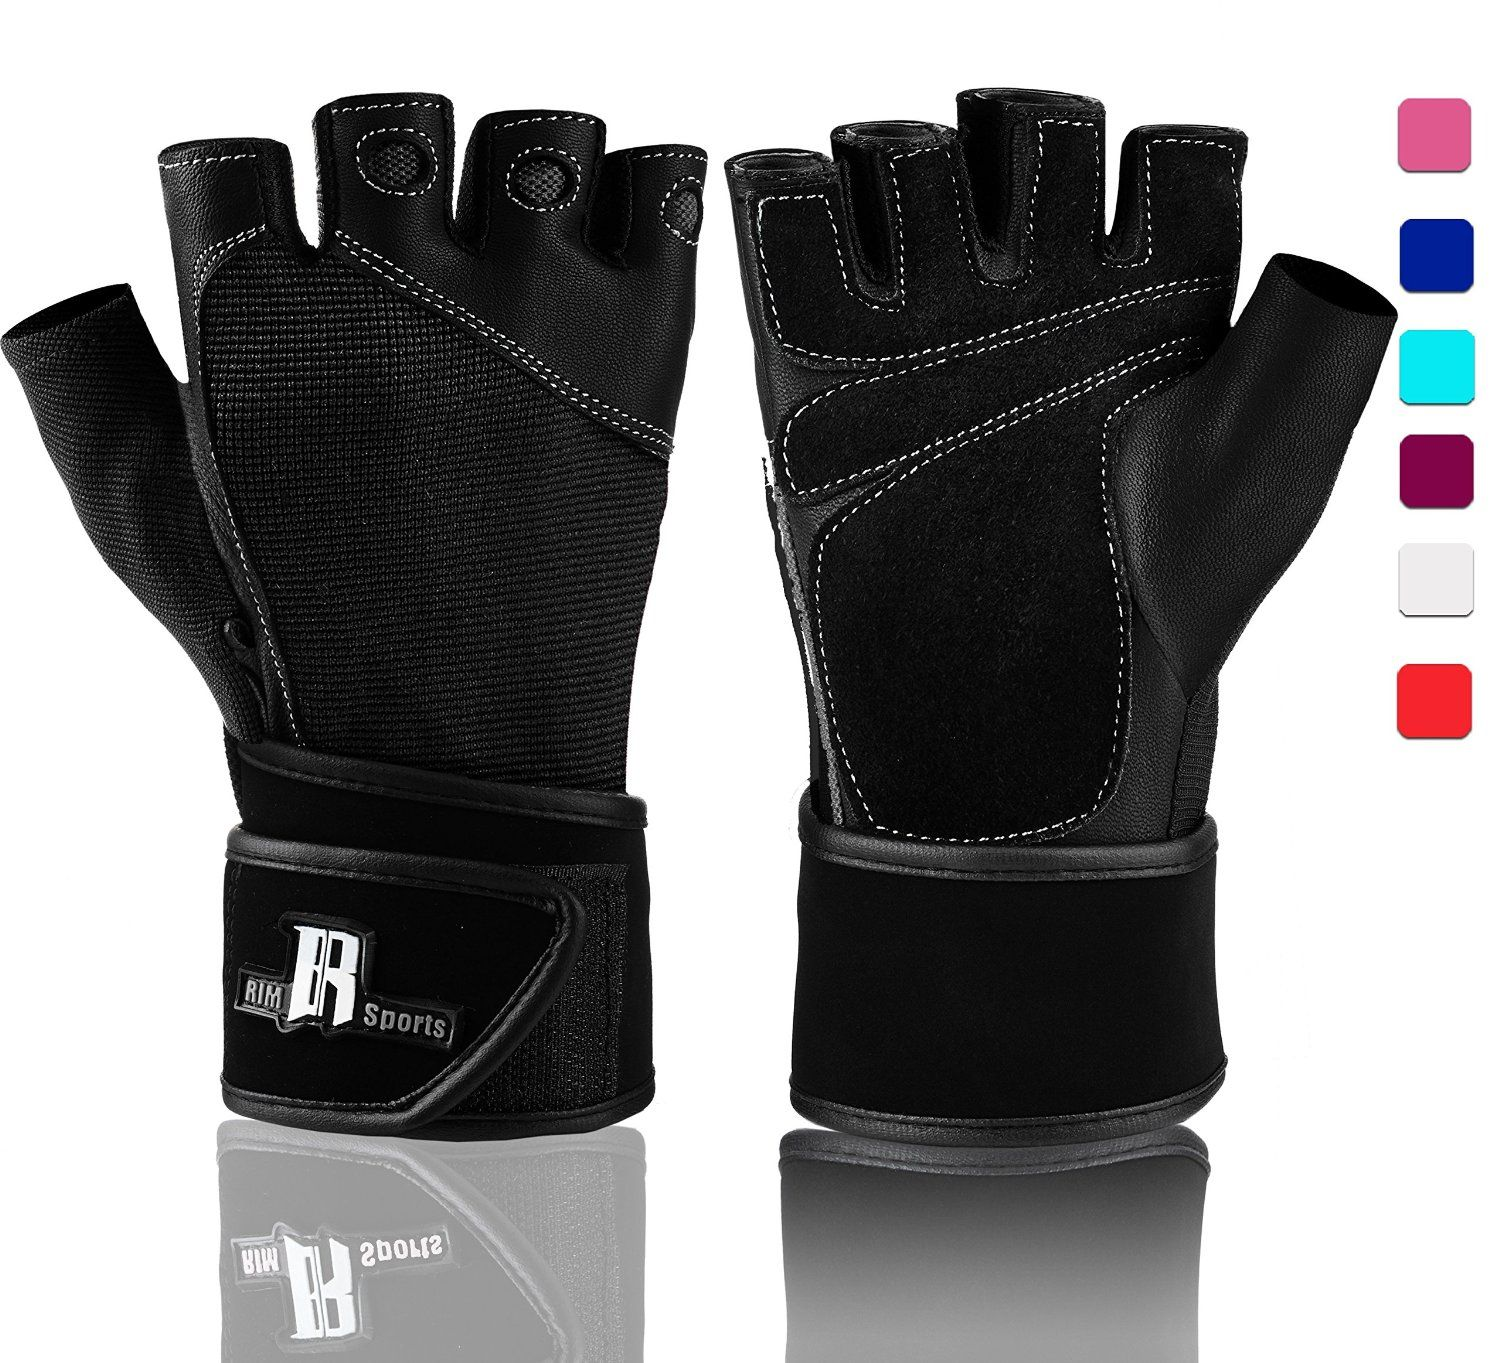 Black Weight lifting Gym Gloves Training Fitness Yoga Exercise Workout Cycling